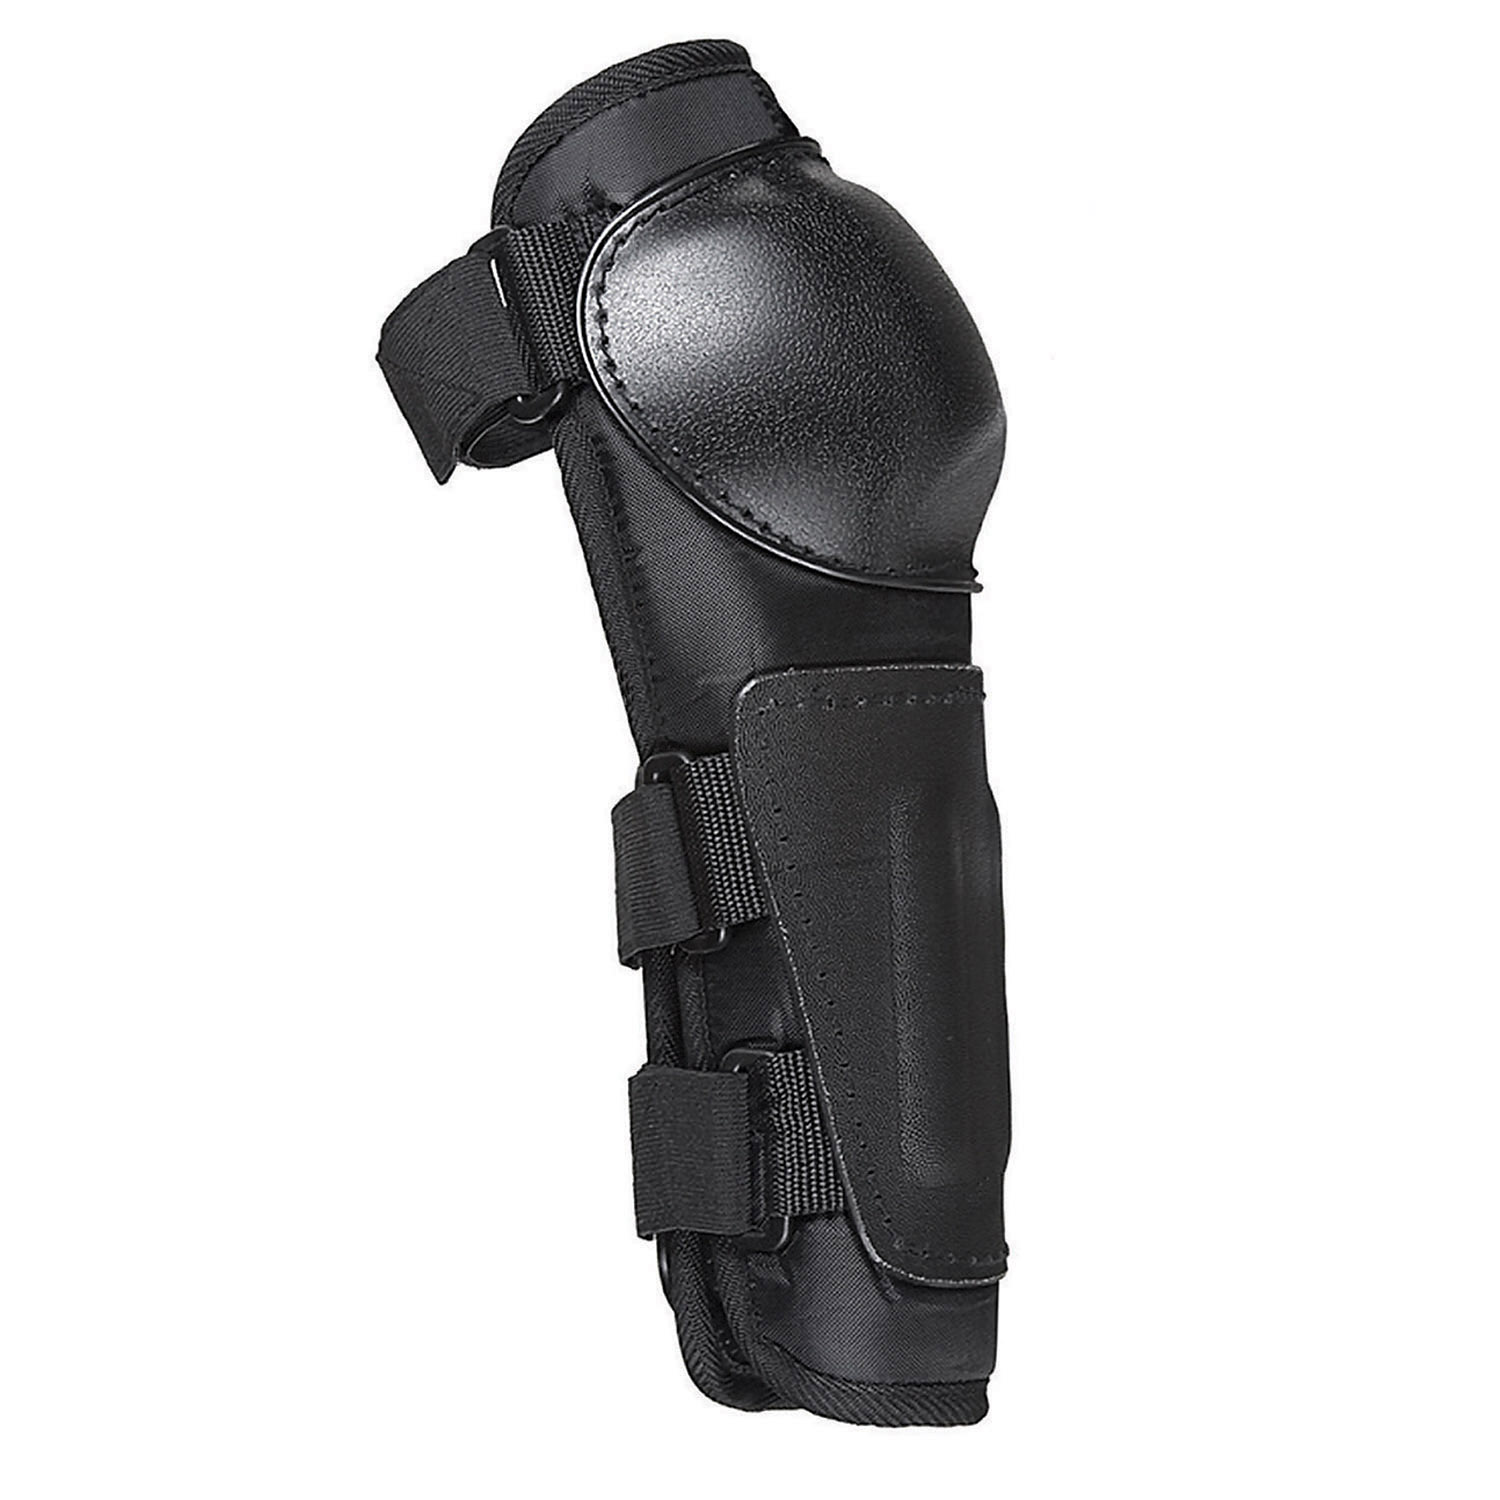 Damascus FlexForce Style Hard Shell Forearm/Elbow Protector